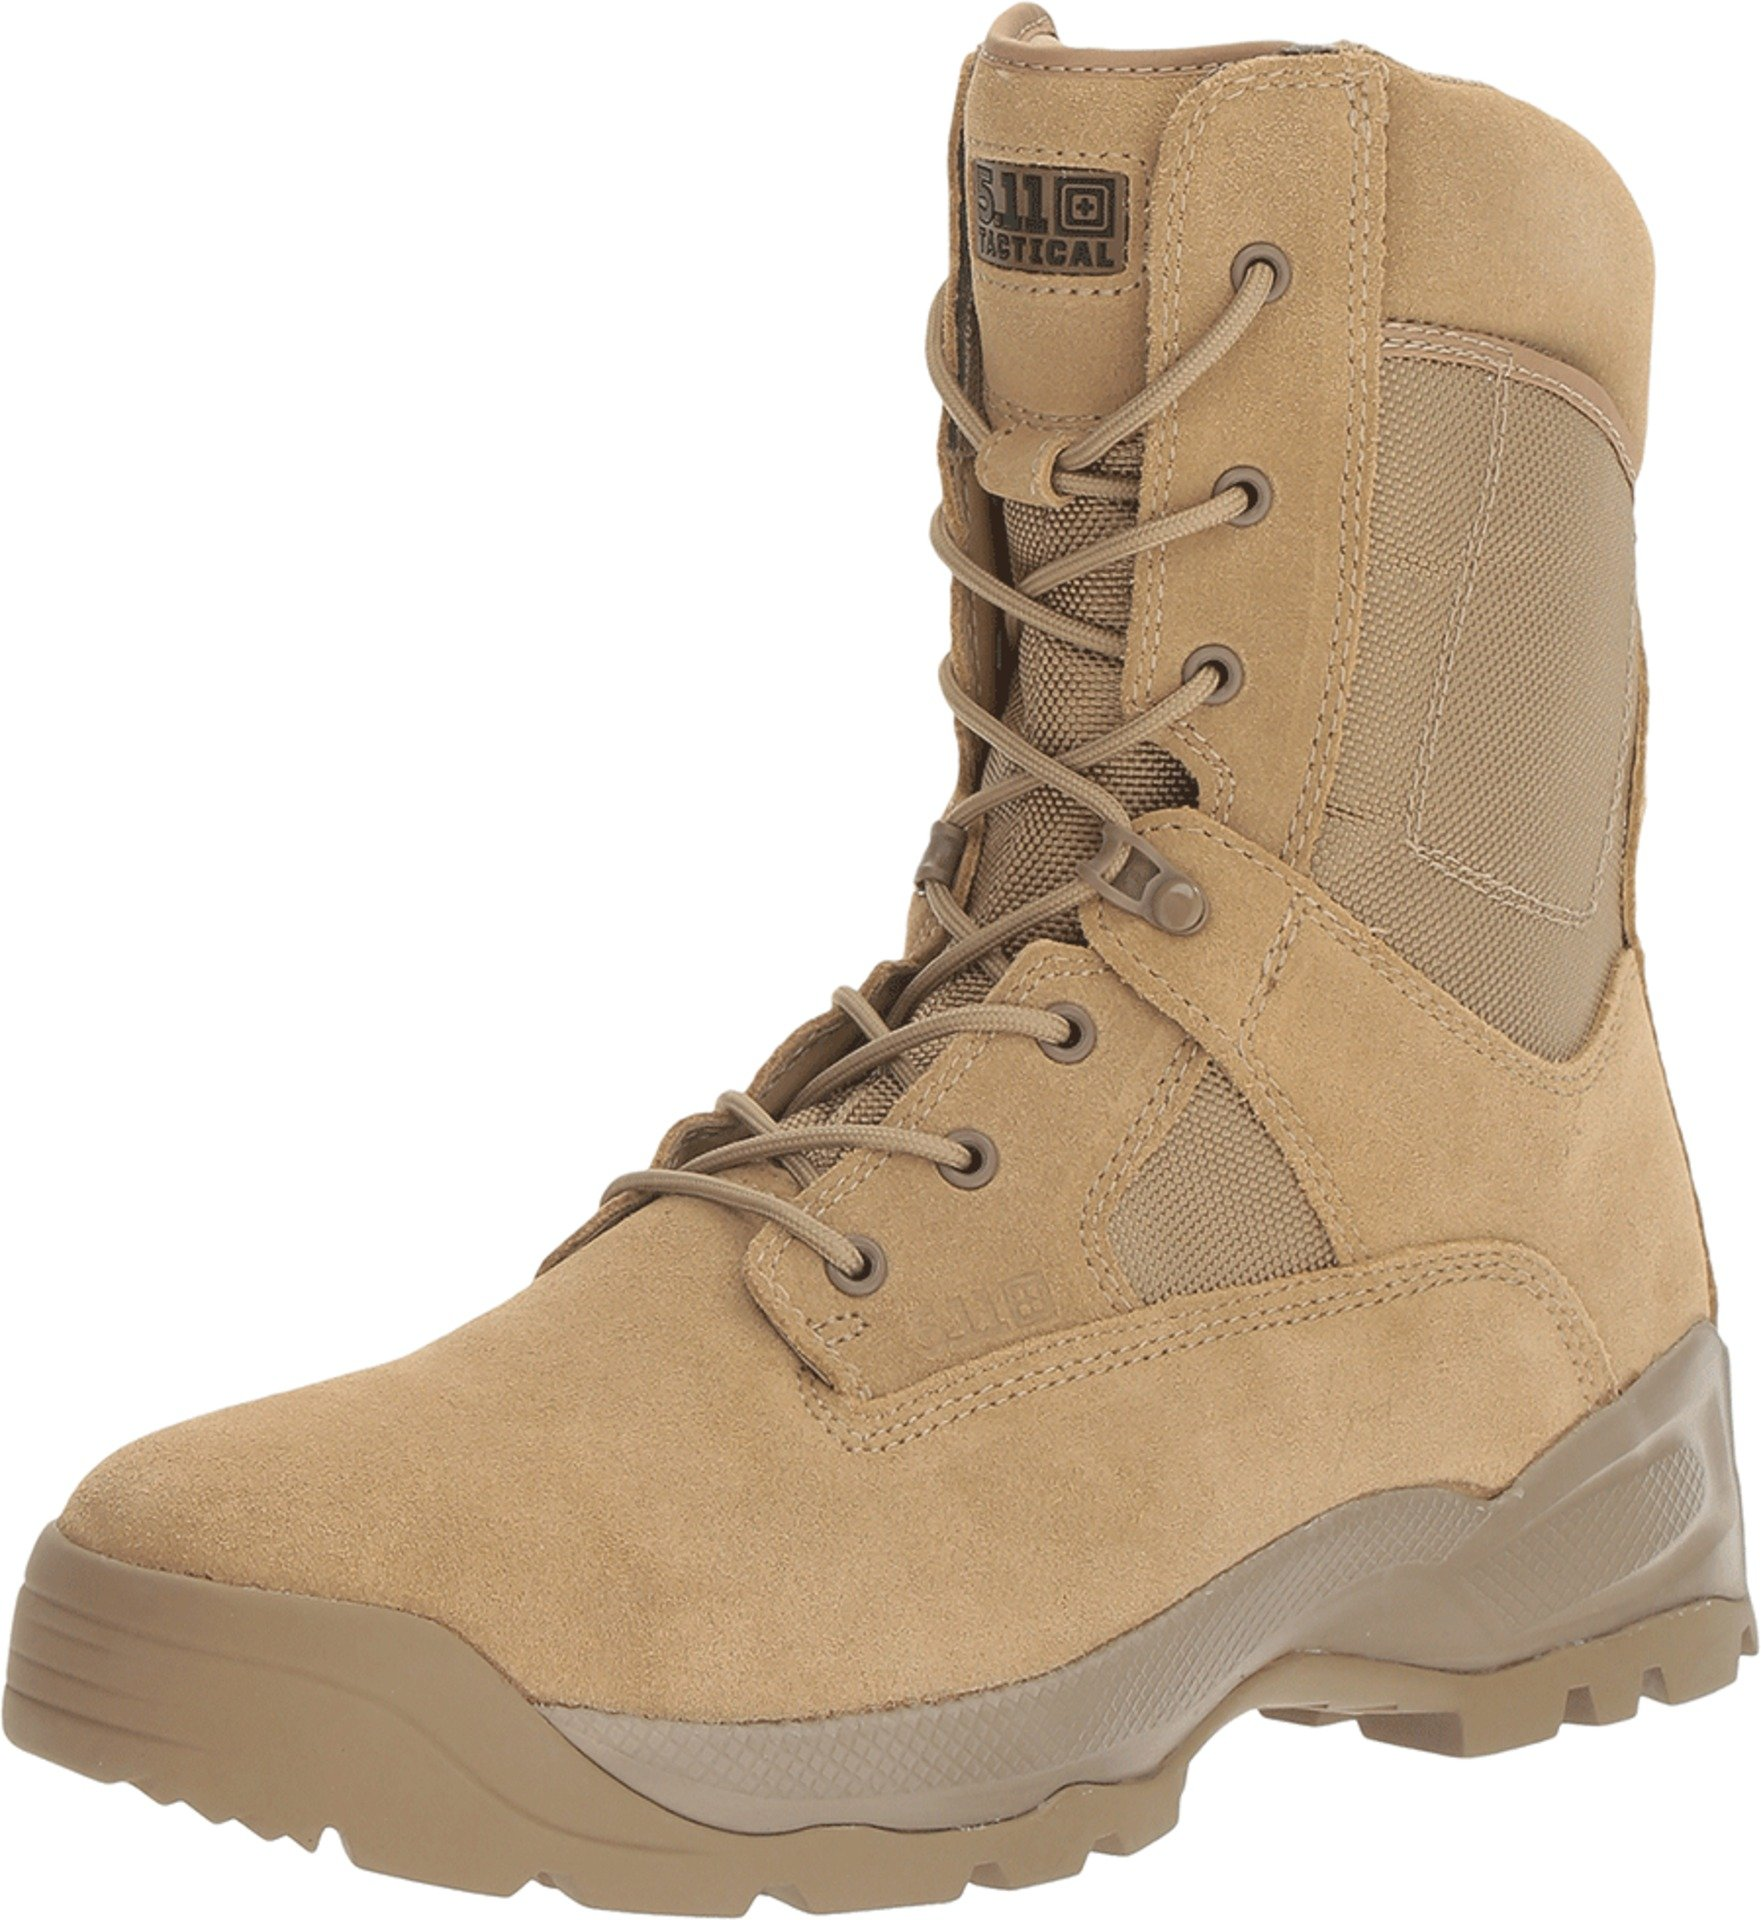 5.11 Tactical A.T.A.C. 8'' Boot, Coyote, 12 (R) by 5.11